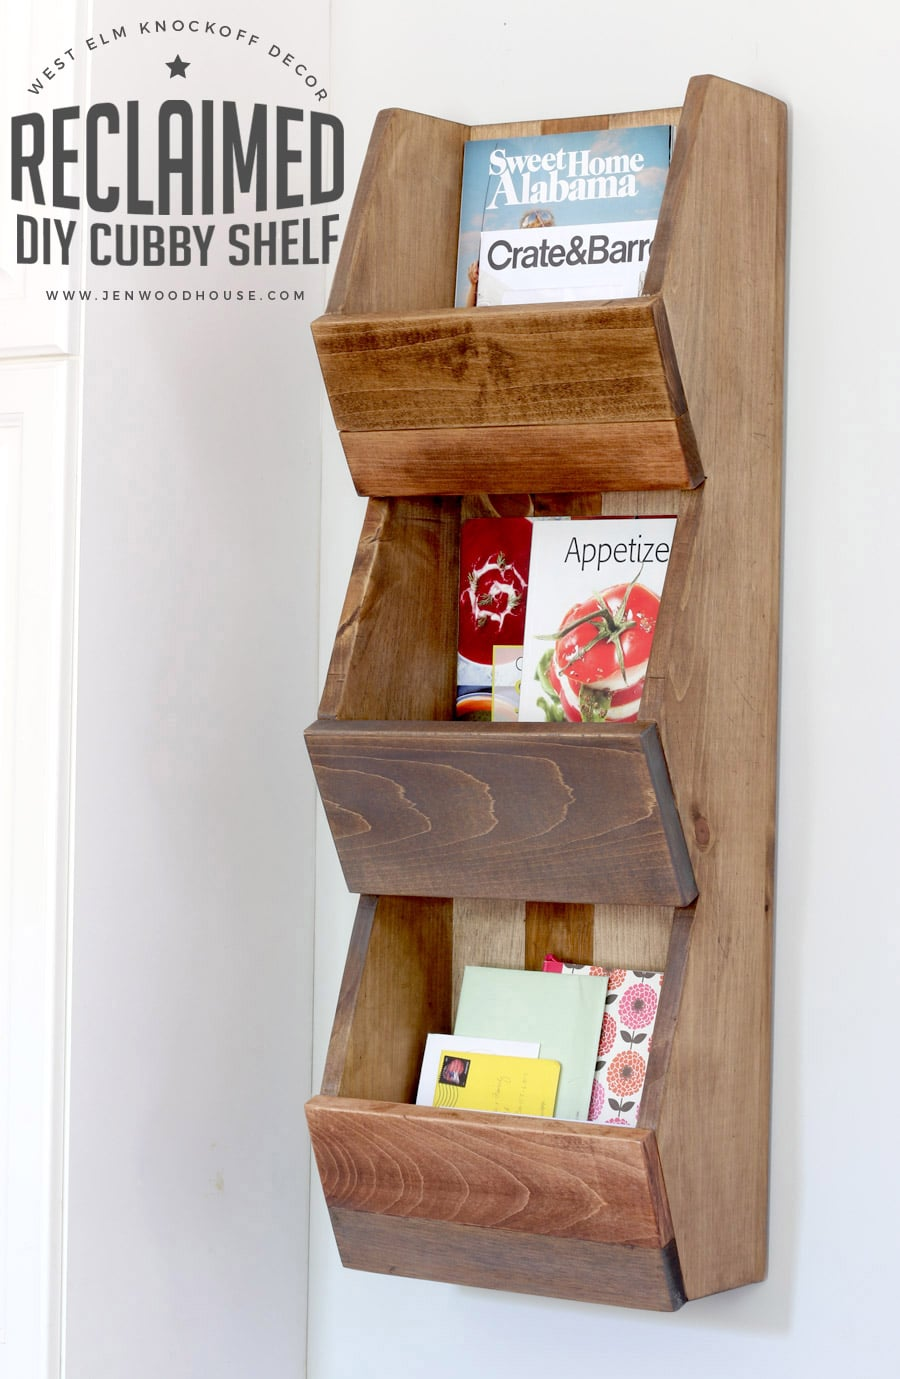 West Elm Knockoff Decor Series: Reclaimed Cubby Shelf